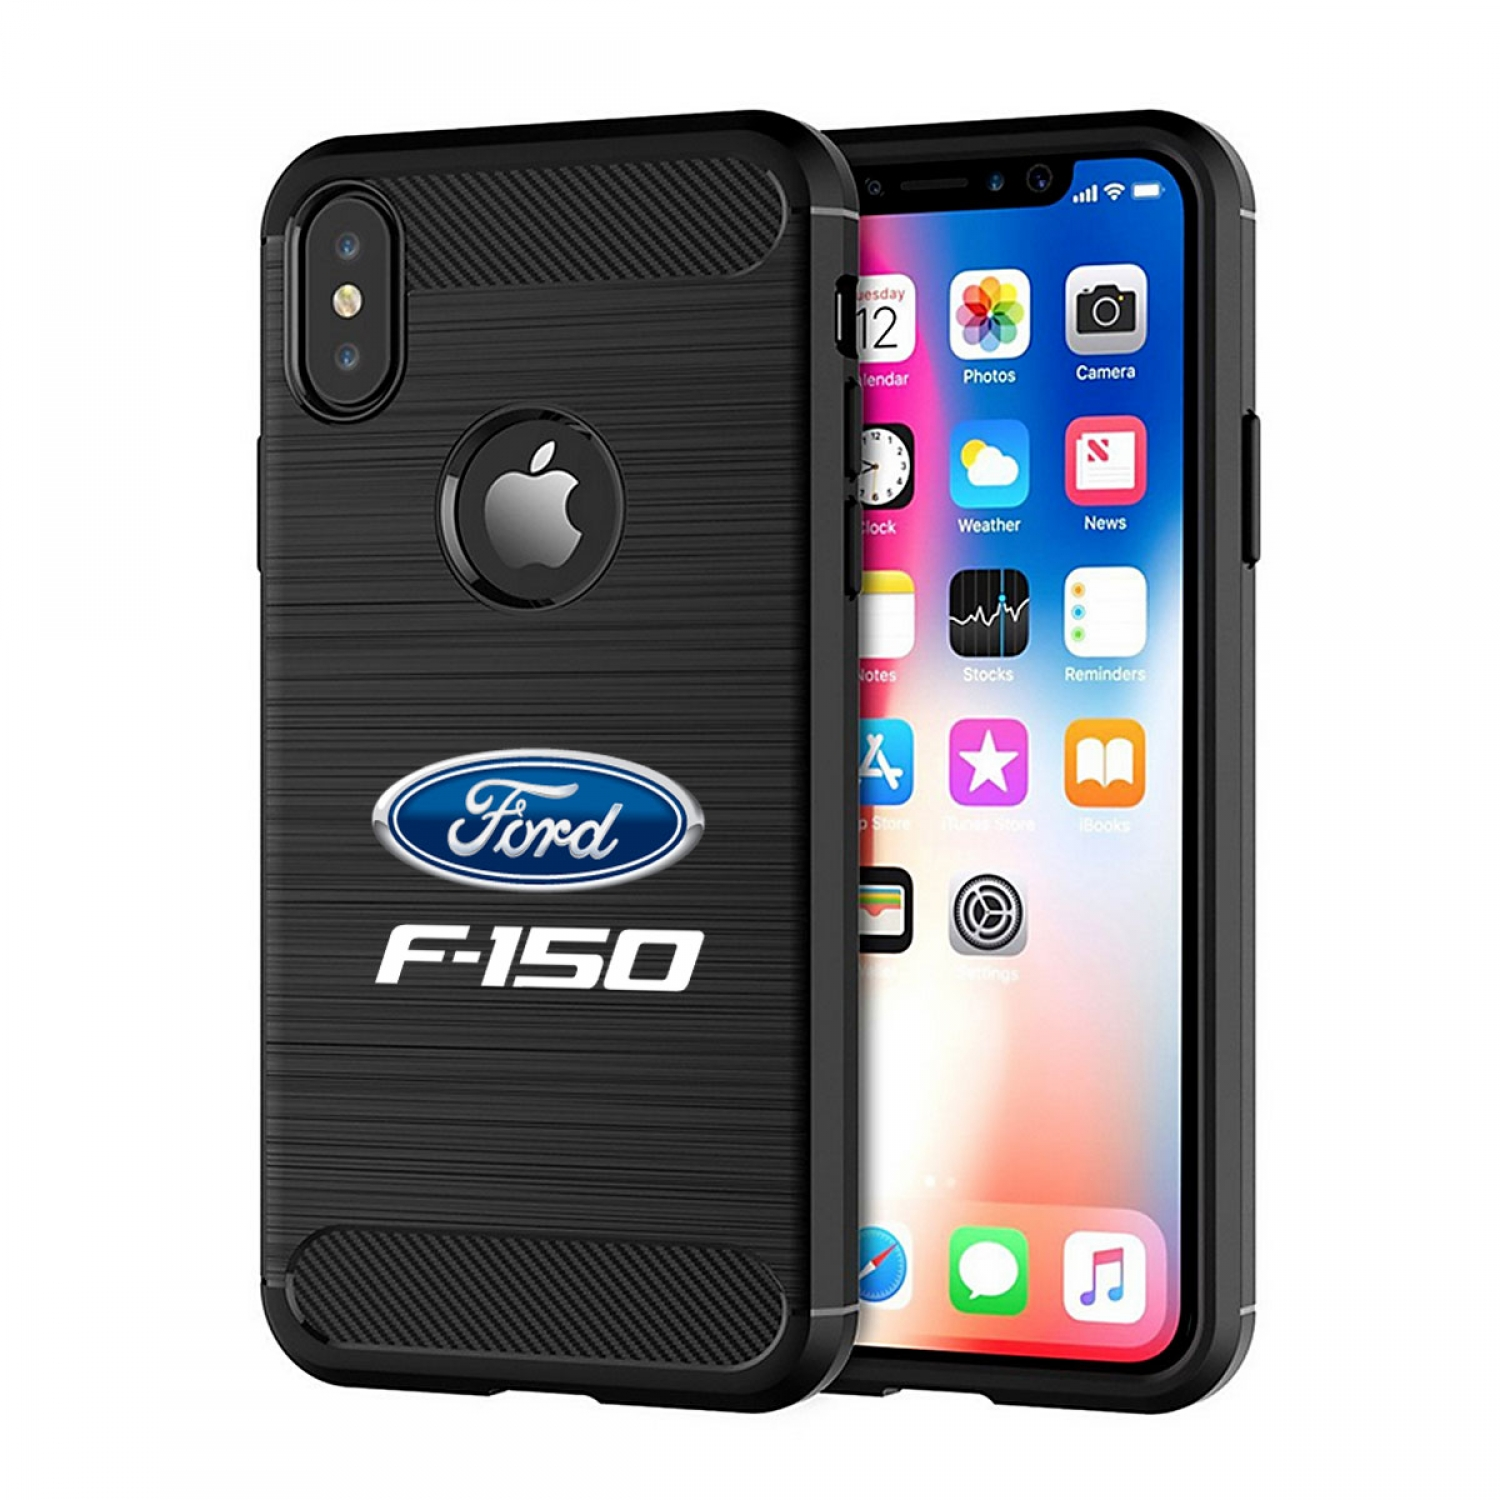 Ford F-150 iPhone X TPU Shockproof Black Carbon Fiber Textures Stripes Cell Phone Case